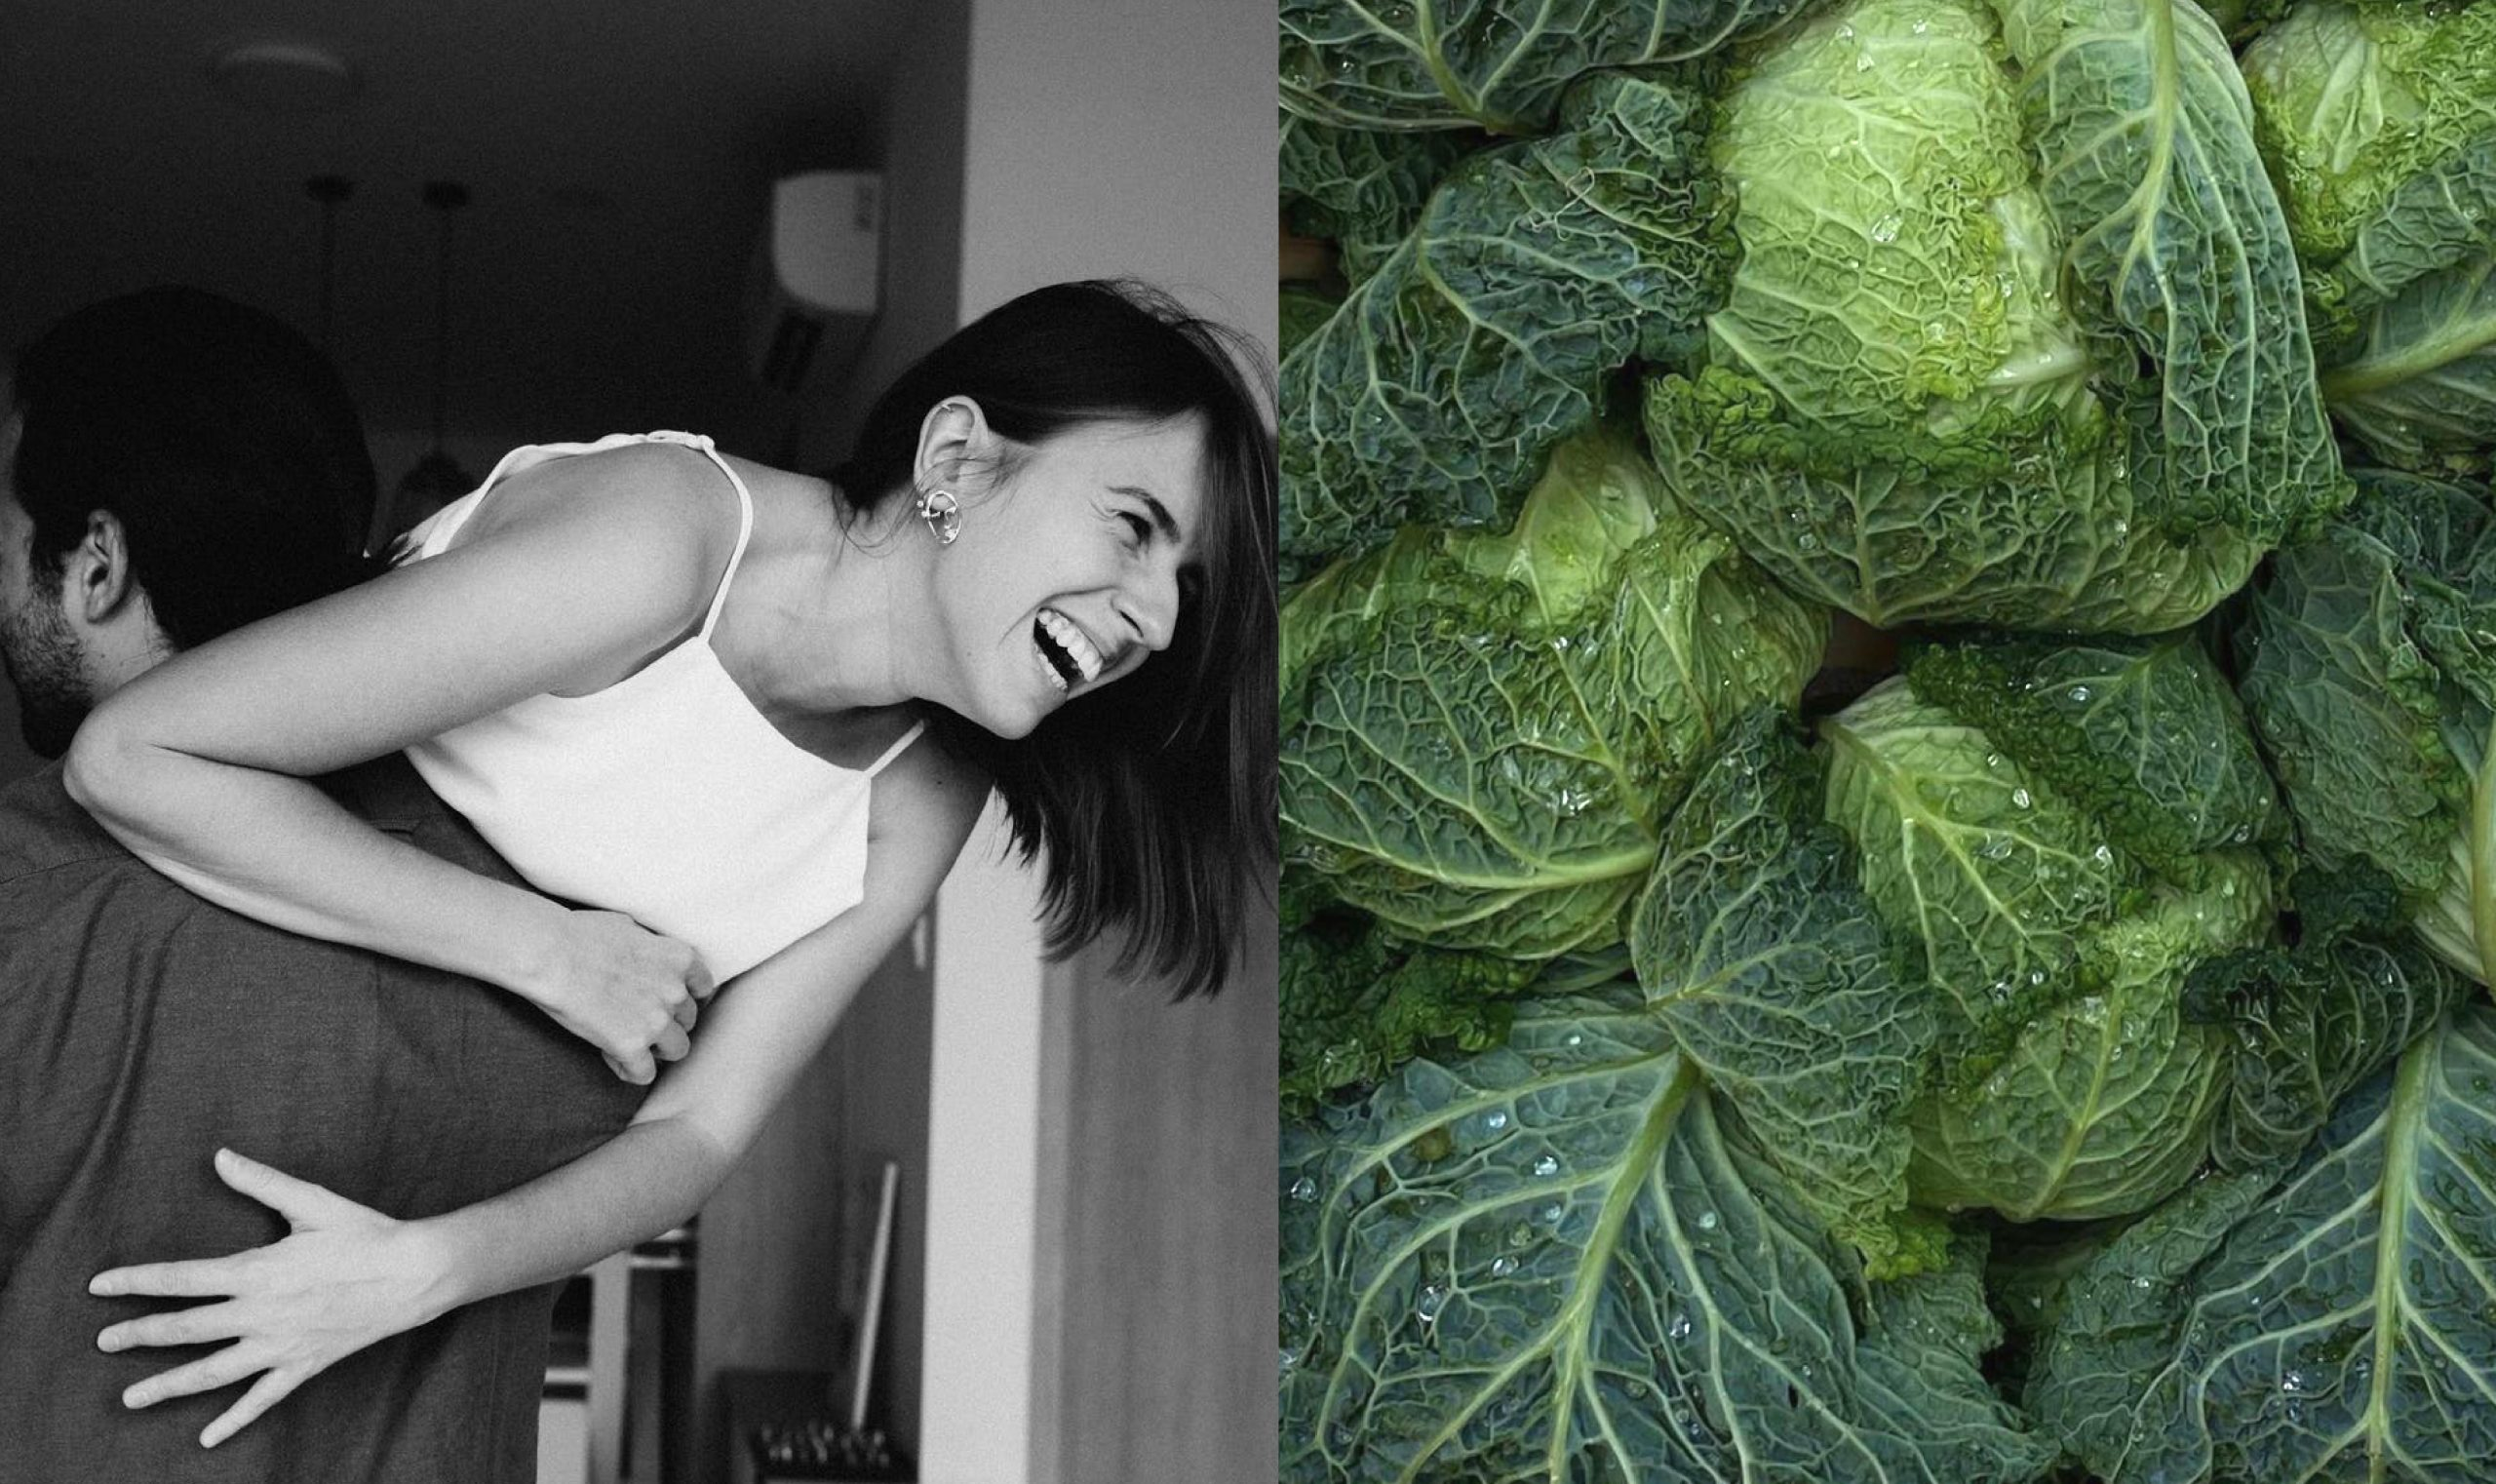 A couple laughing with lettuces